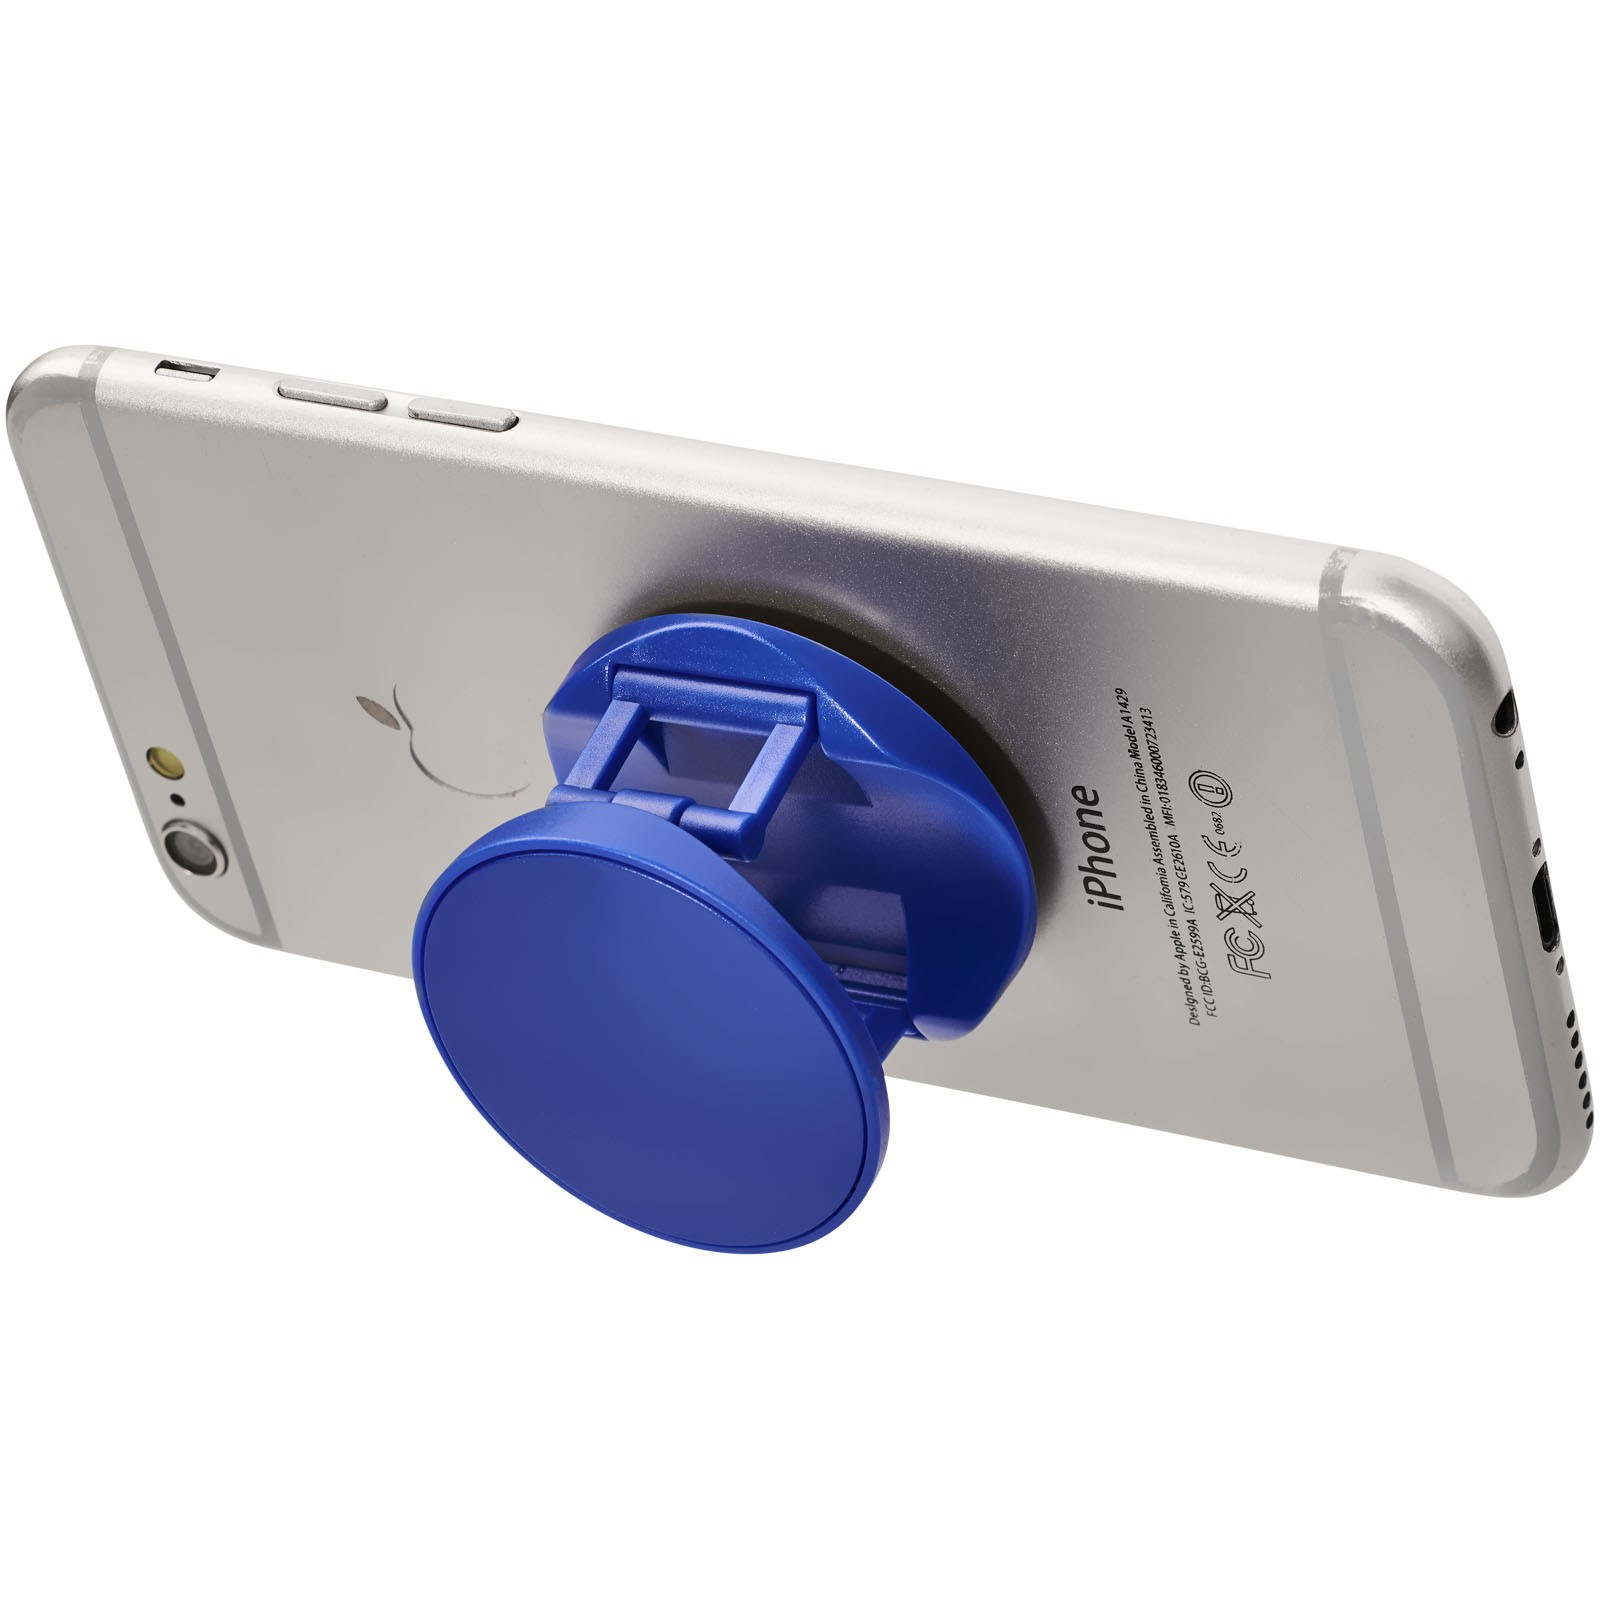 Brace phone stand with grip - Royal blue